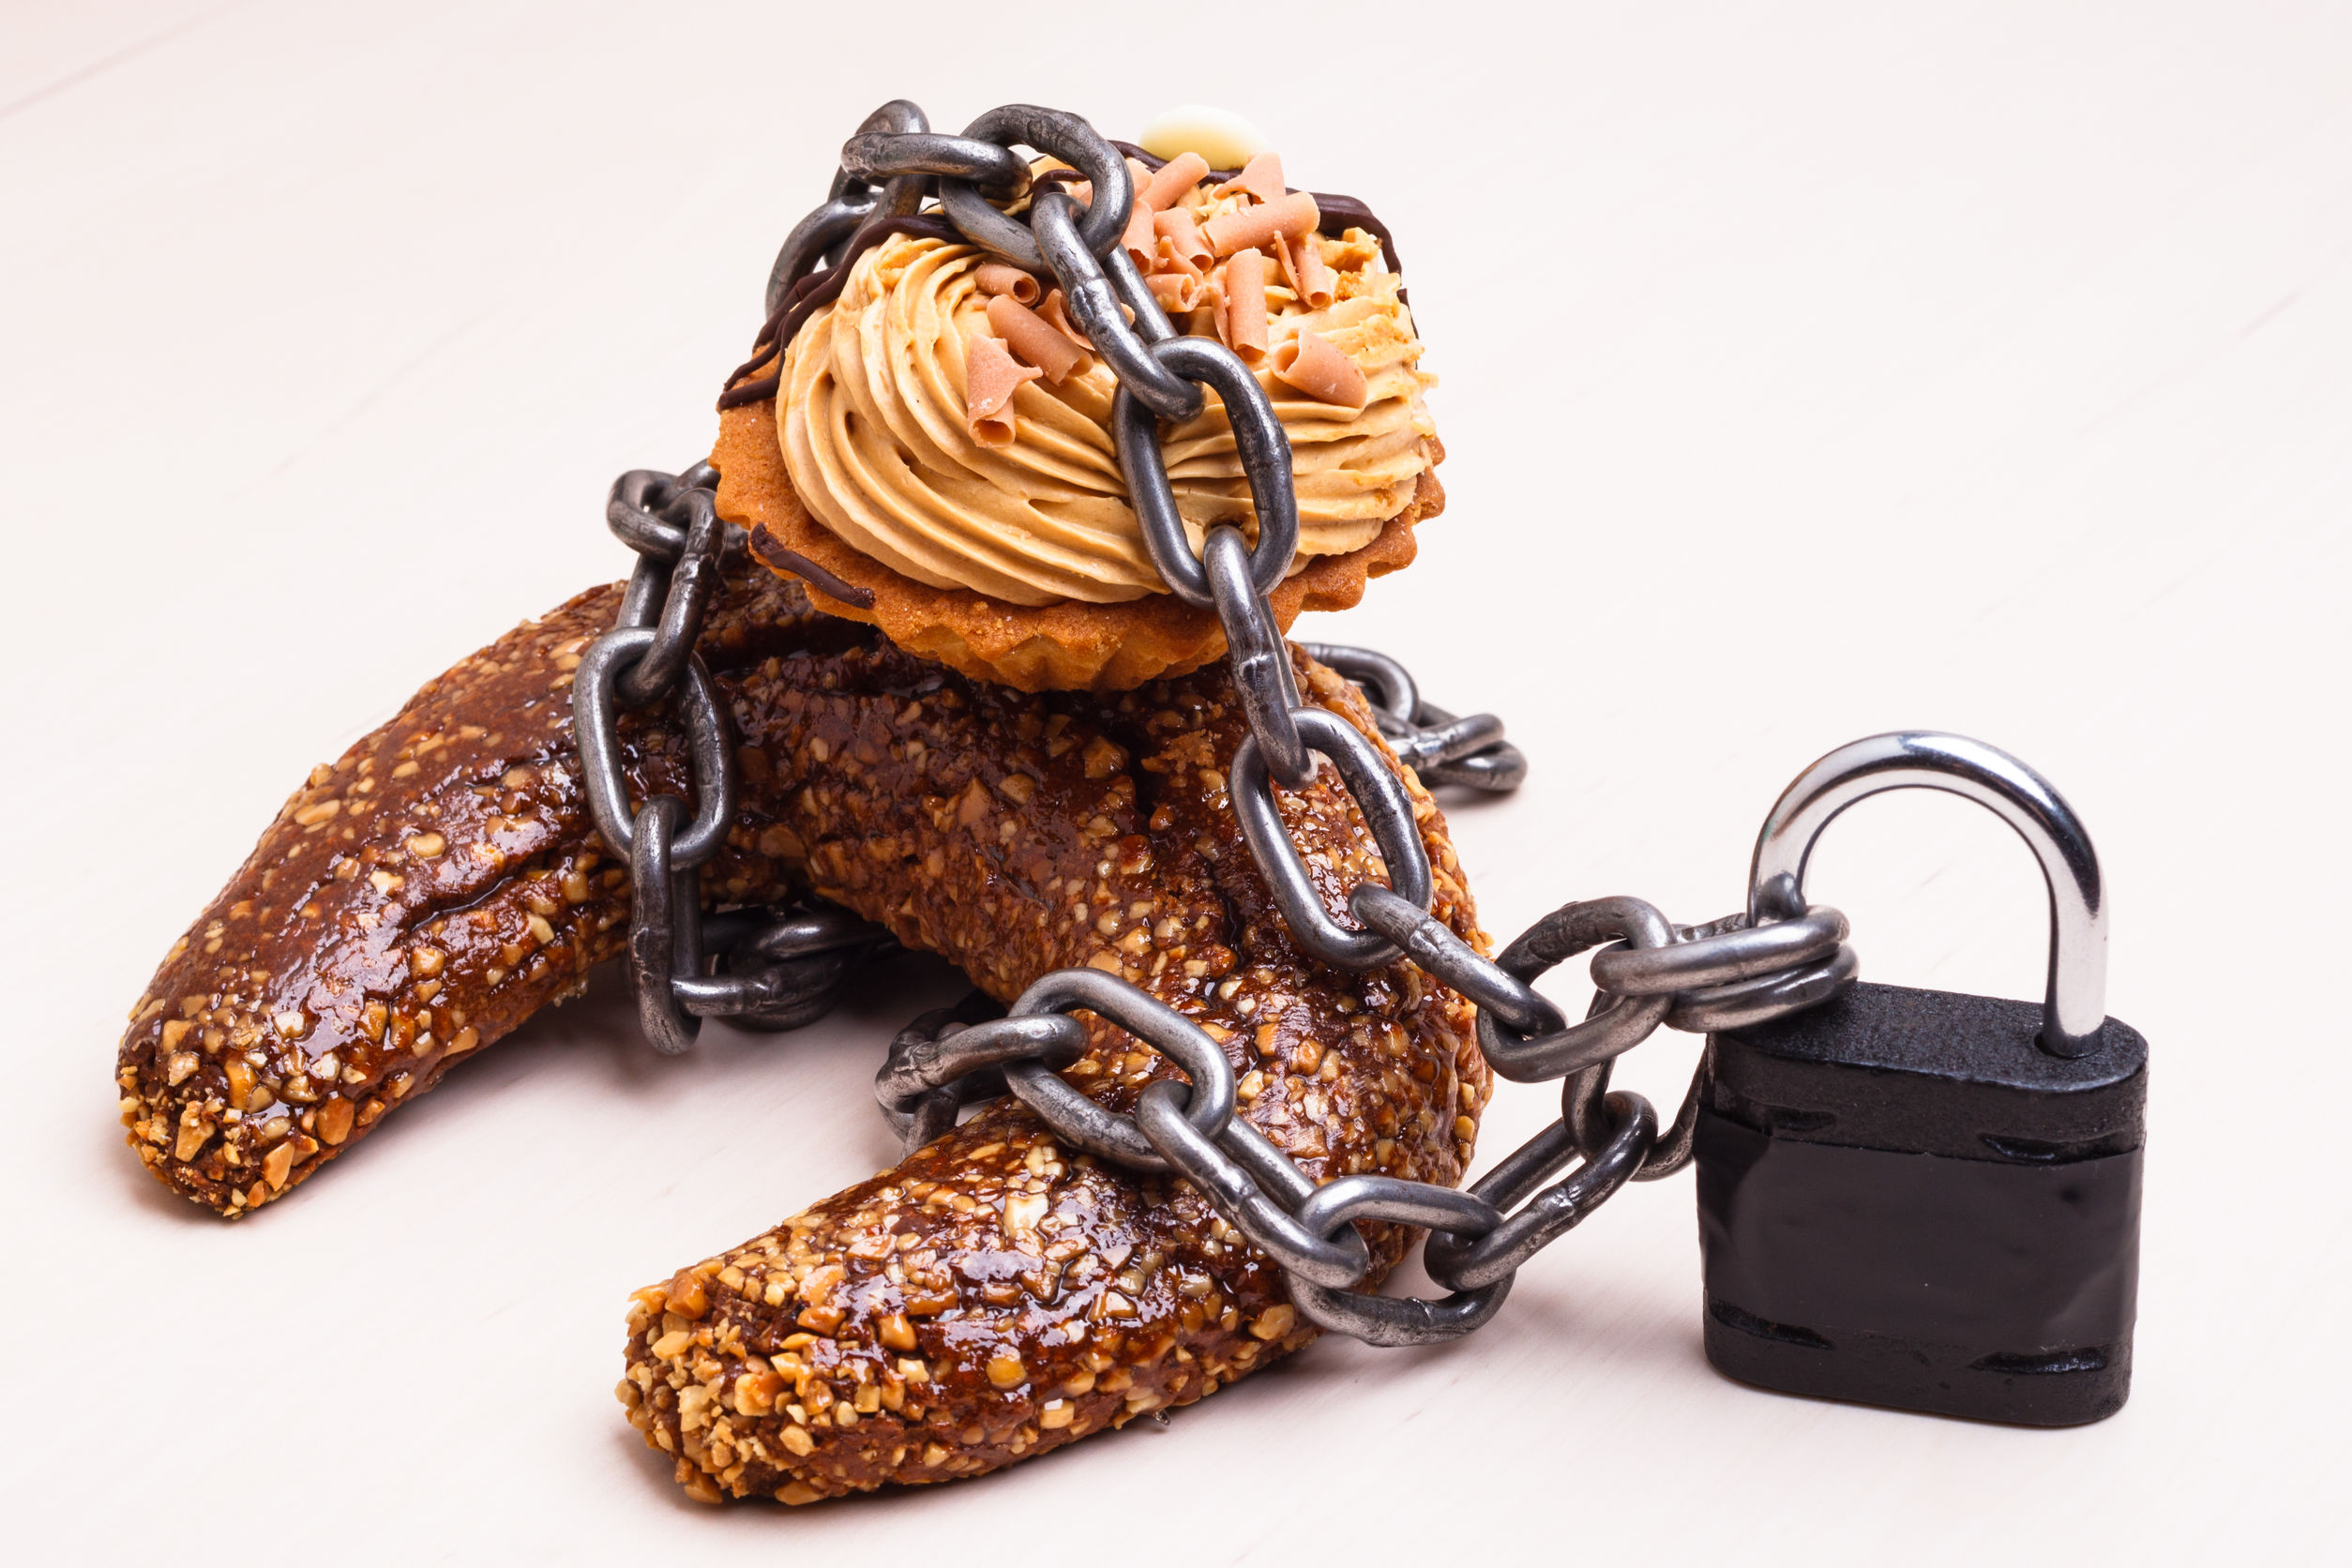 48361056 - diet sugar sweet food addiction concept. cake cupcake wrapped in metal chain and padlock